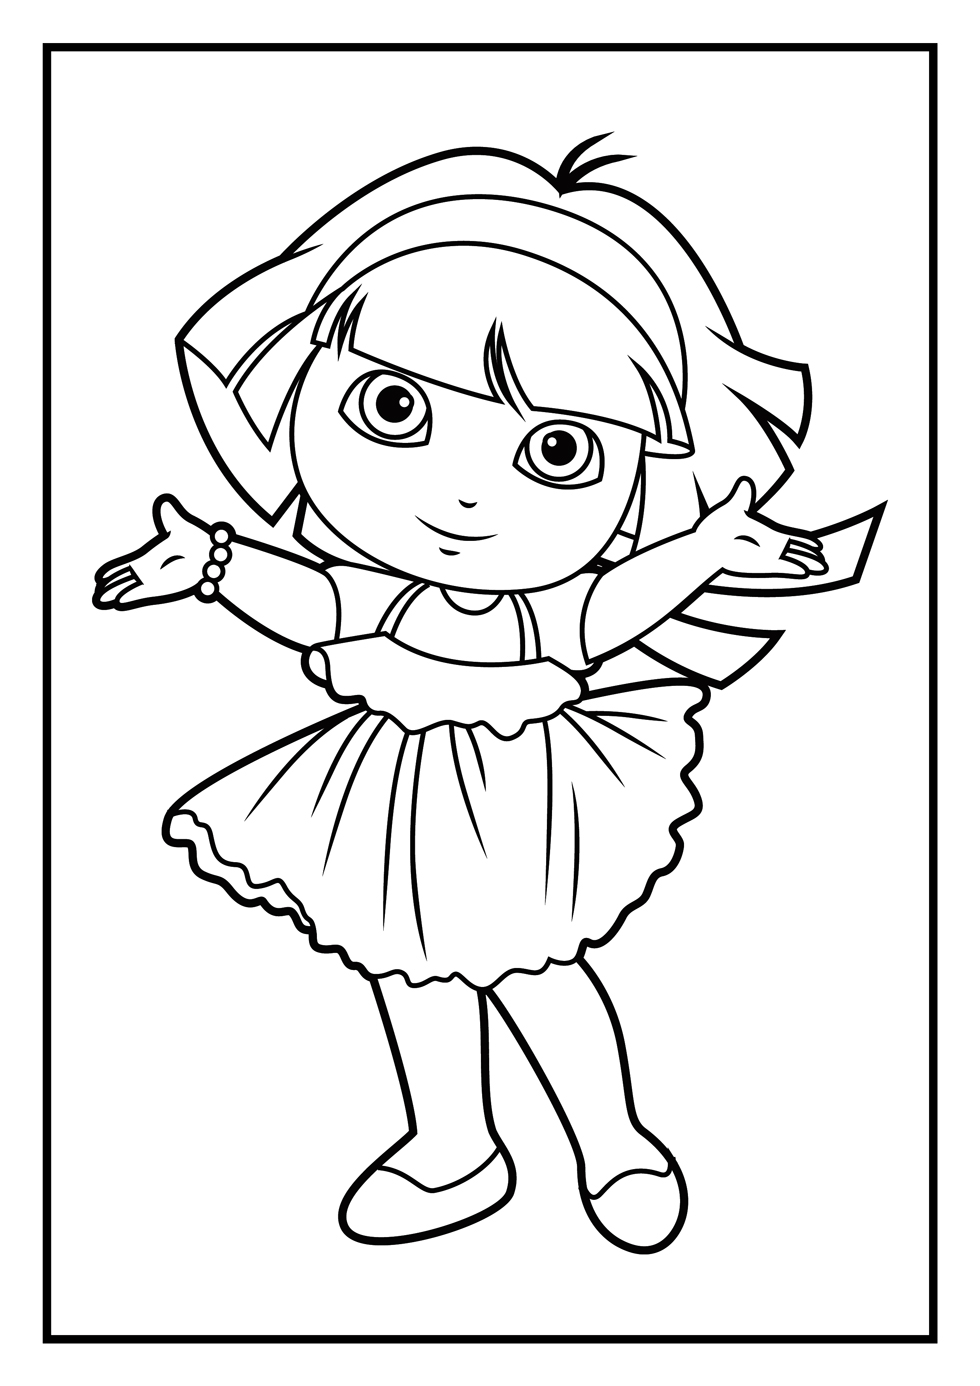 dora pictures to color and print print download dora coloring pages to learn new things dora color to pictures print and